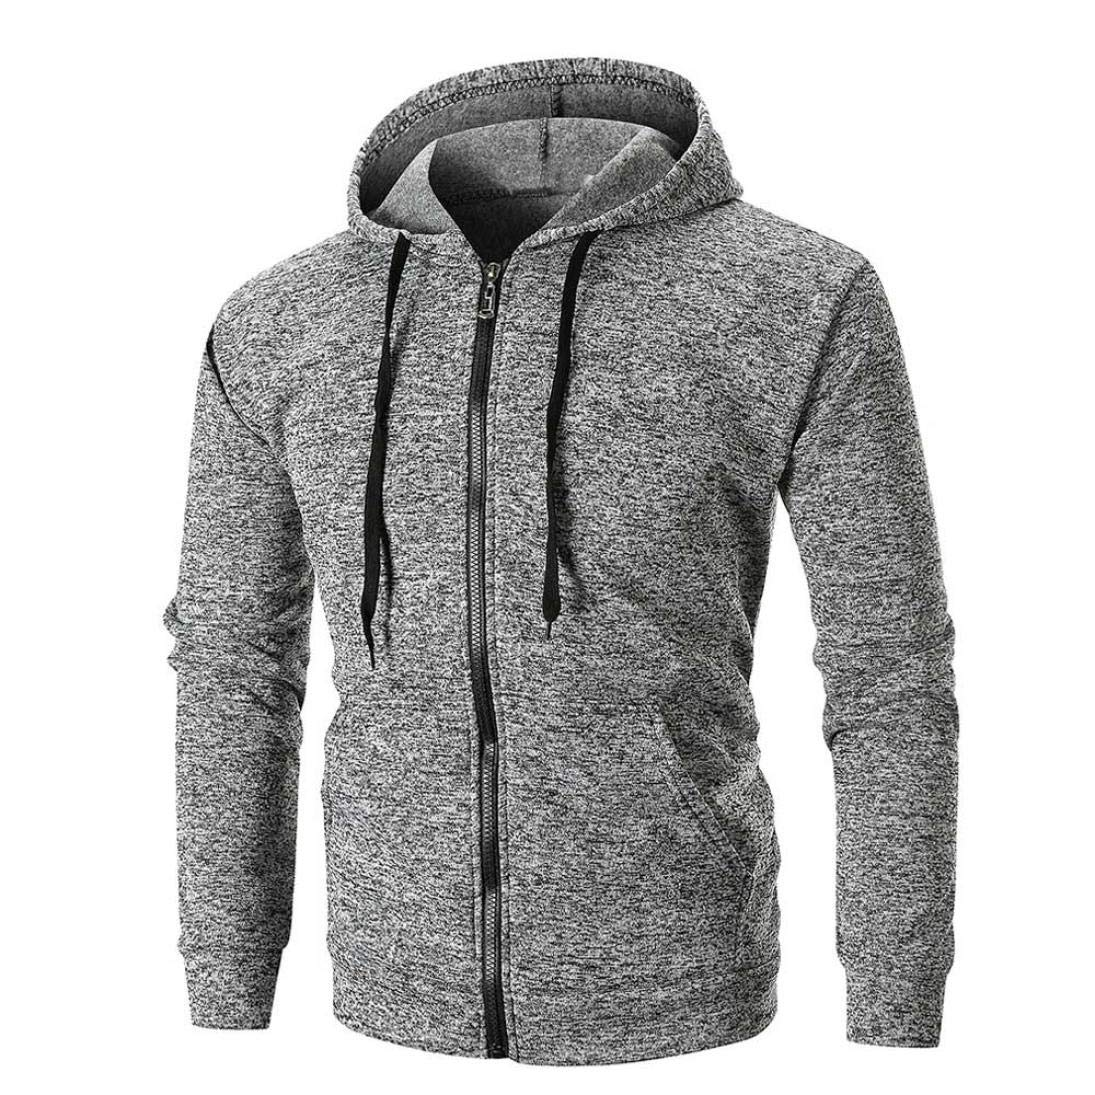 PASATO Men's Long Sleeve Solid Hoodie Hooded Sweatshirt Outwear Top Tee Blouse, Classic Clothes(Gray, XL)